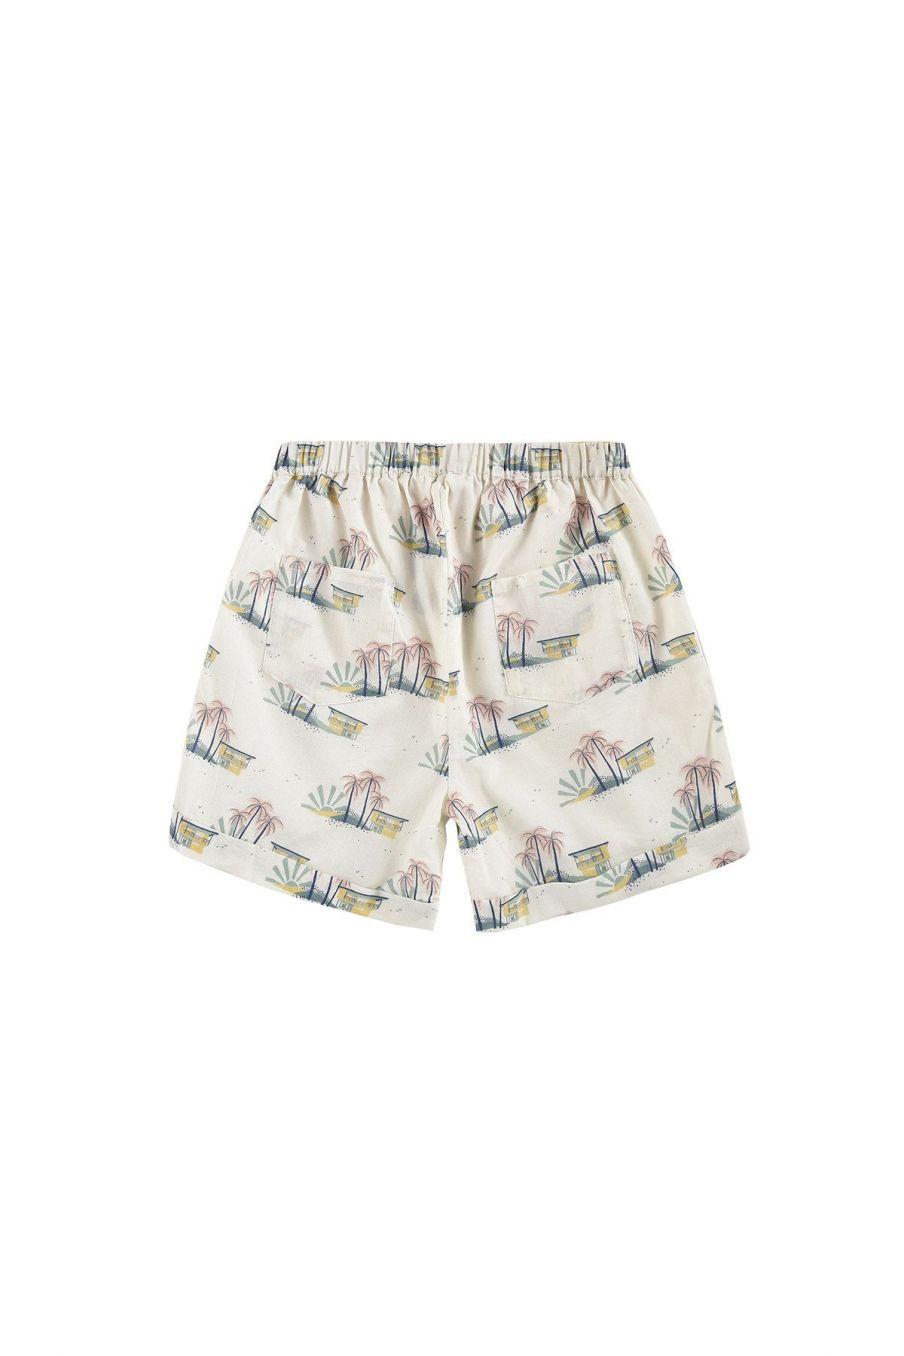 boheme chic vintage short garcon aliki off-white hawaï